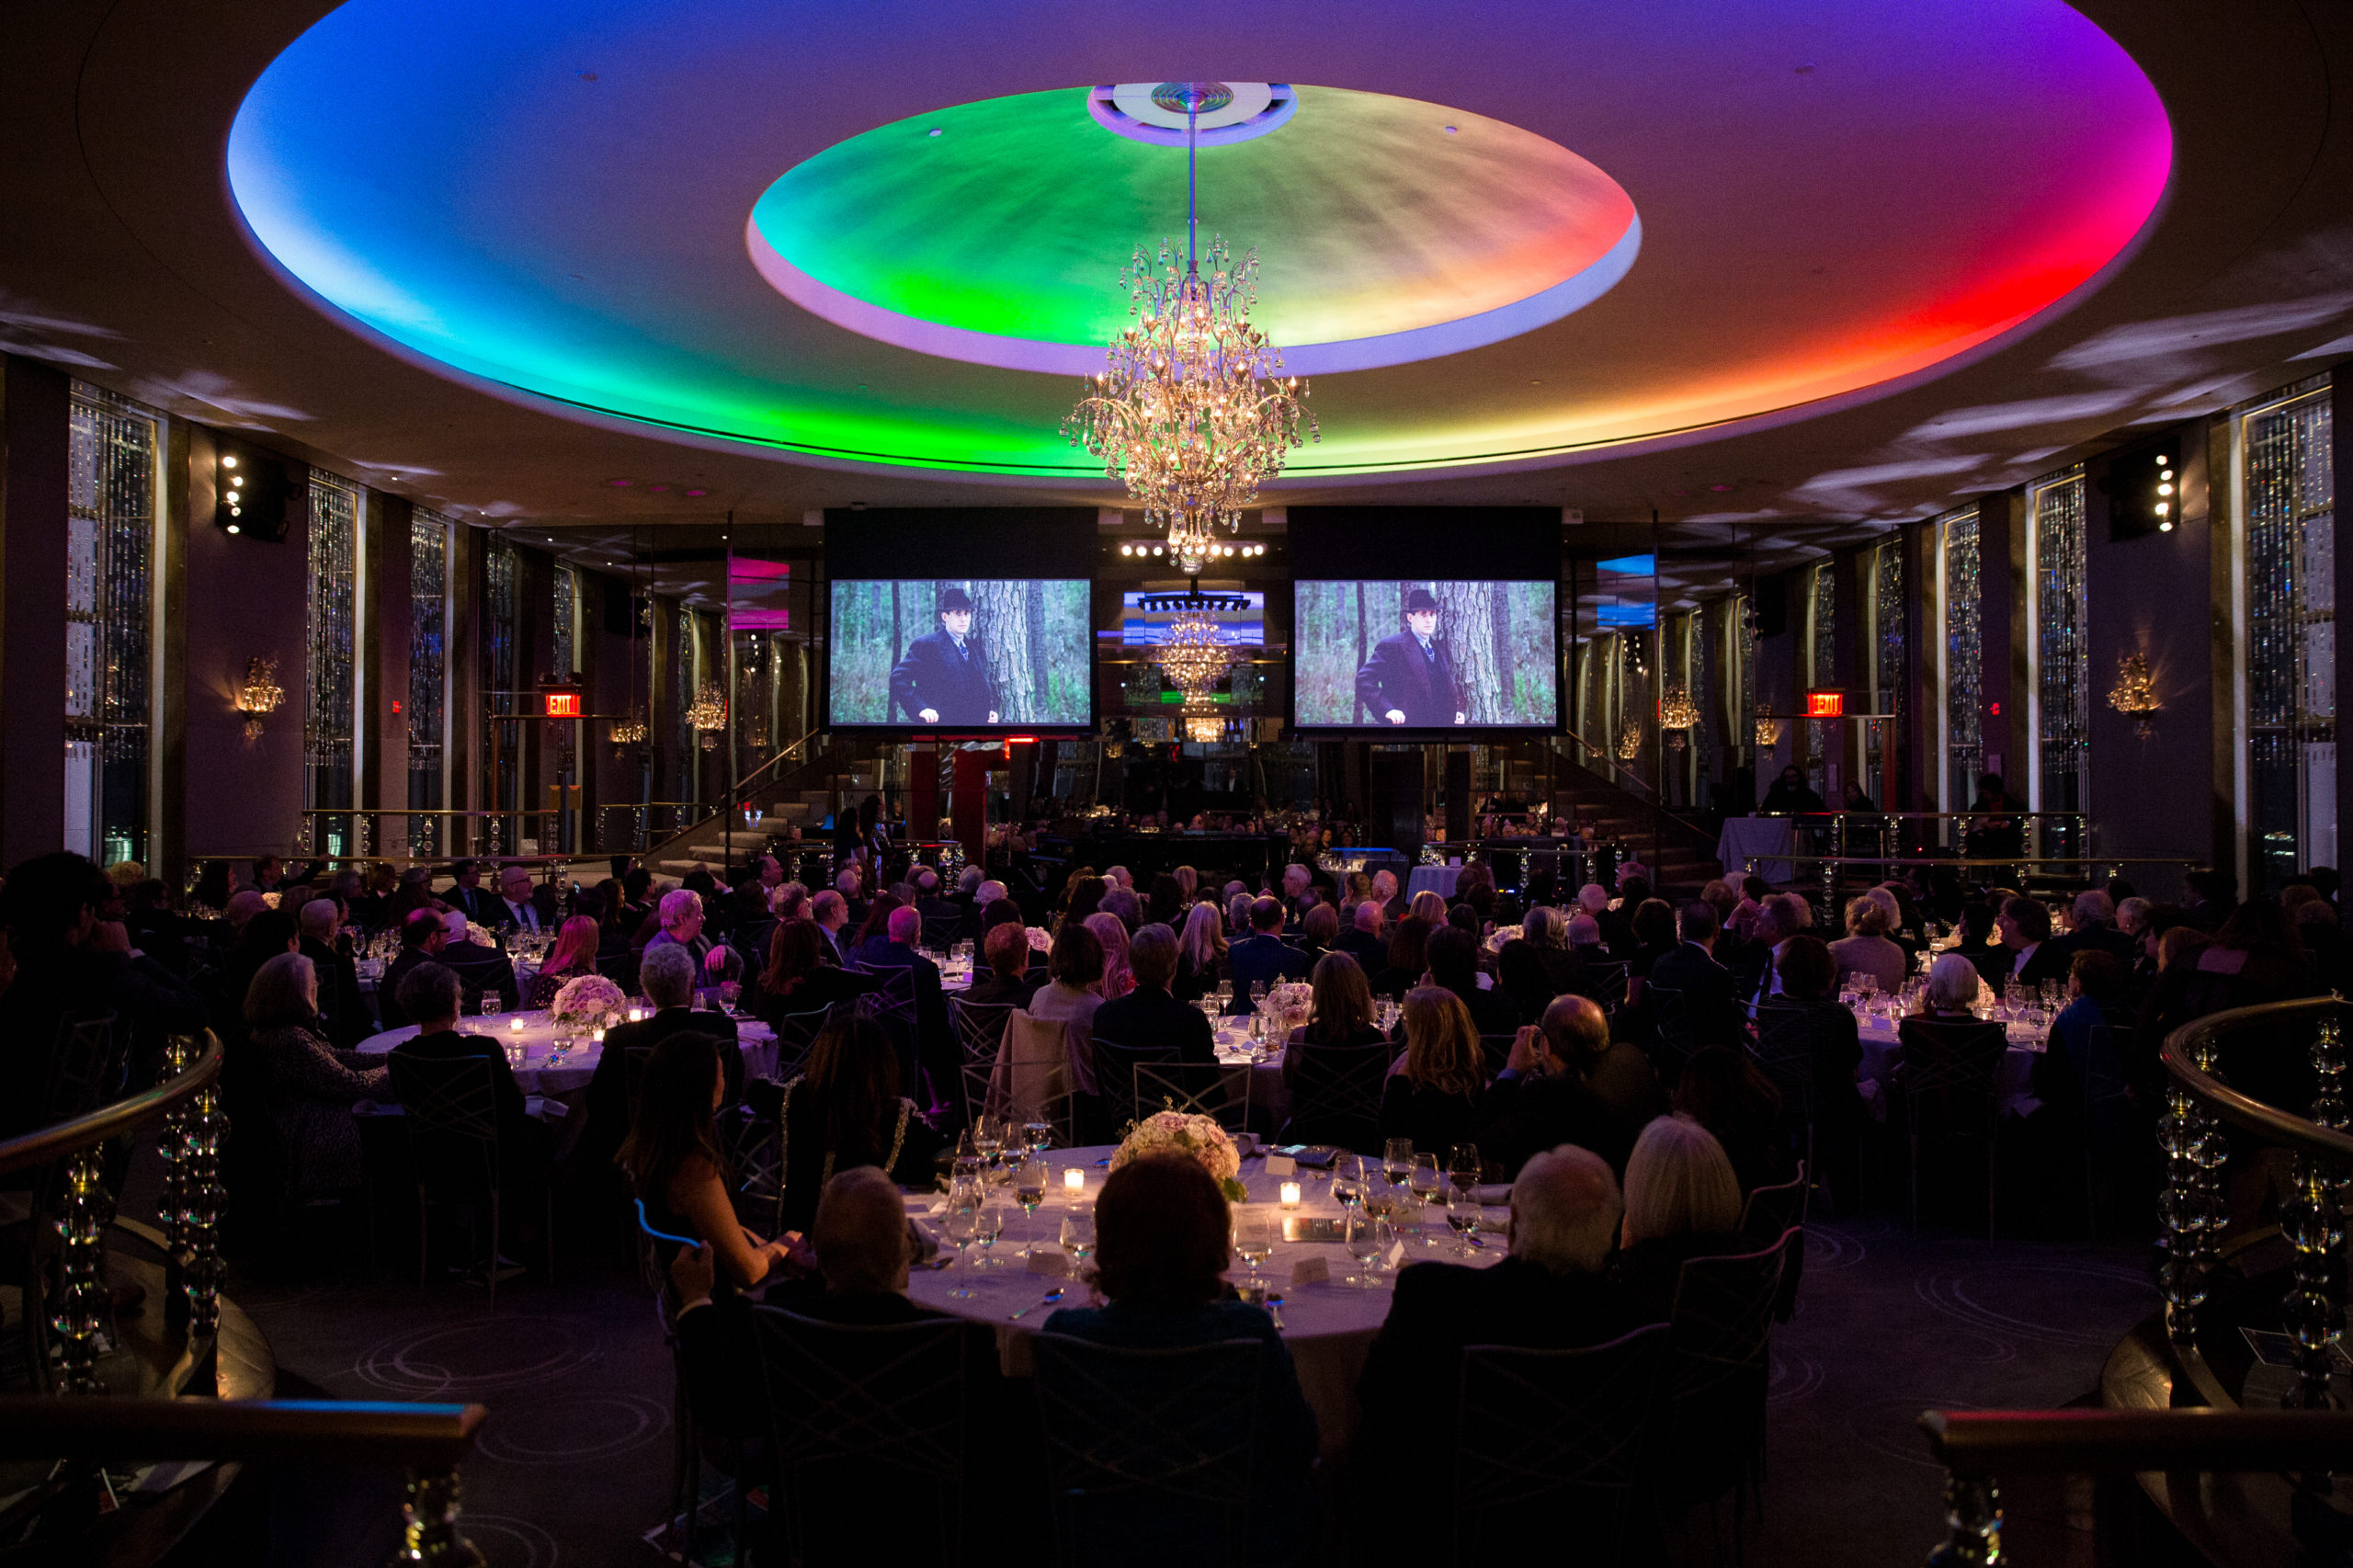 The 2019 Guild Hall Academy of the Arts Achievement Awards Dinner a The Rainbow Room in New York City.